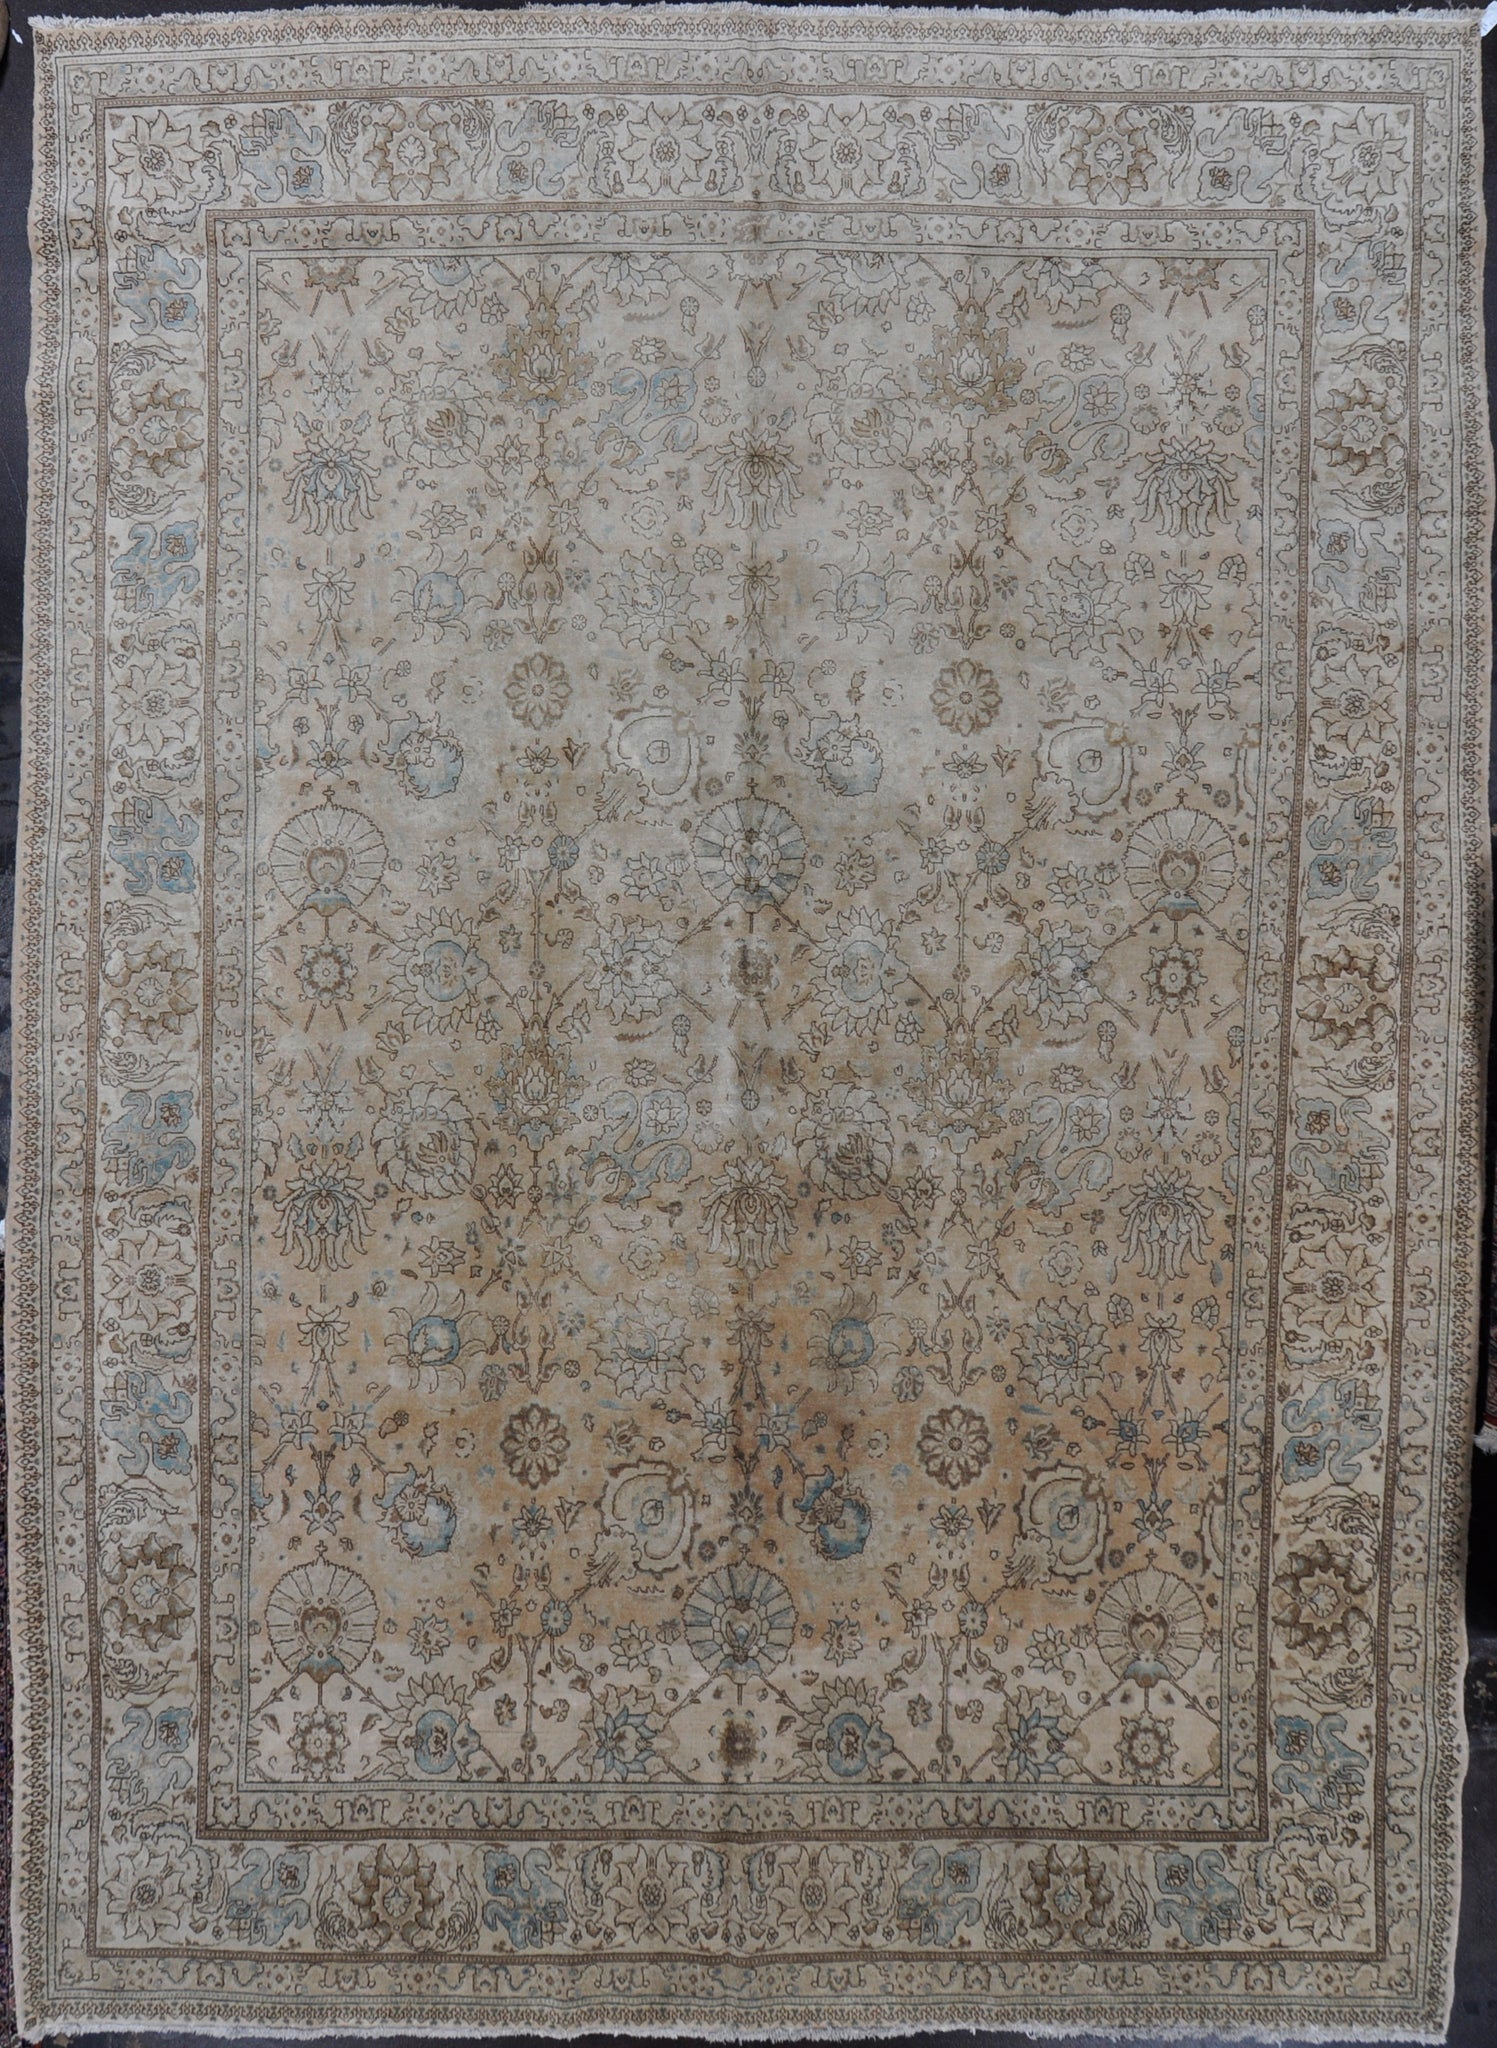 Rug Id: 3060 Antique Persian Tabriz 11.6x16.0